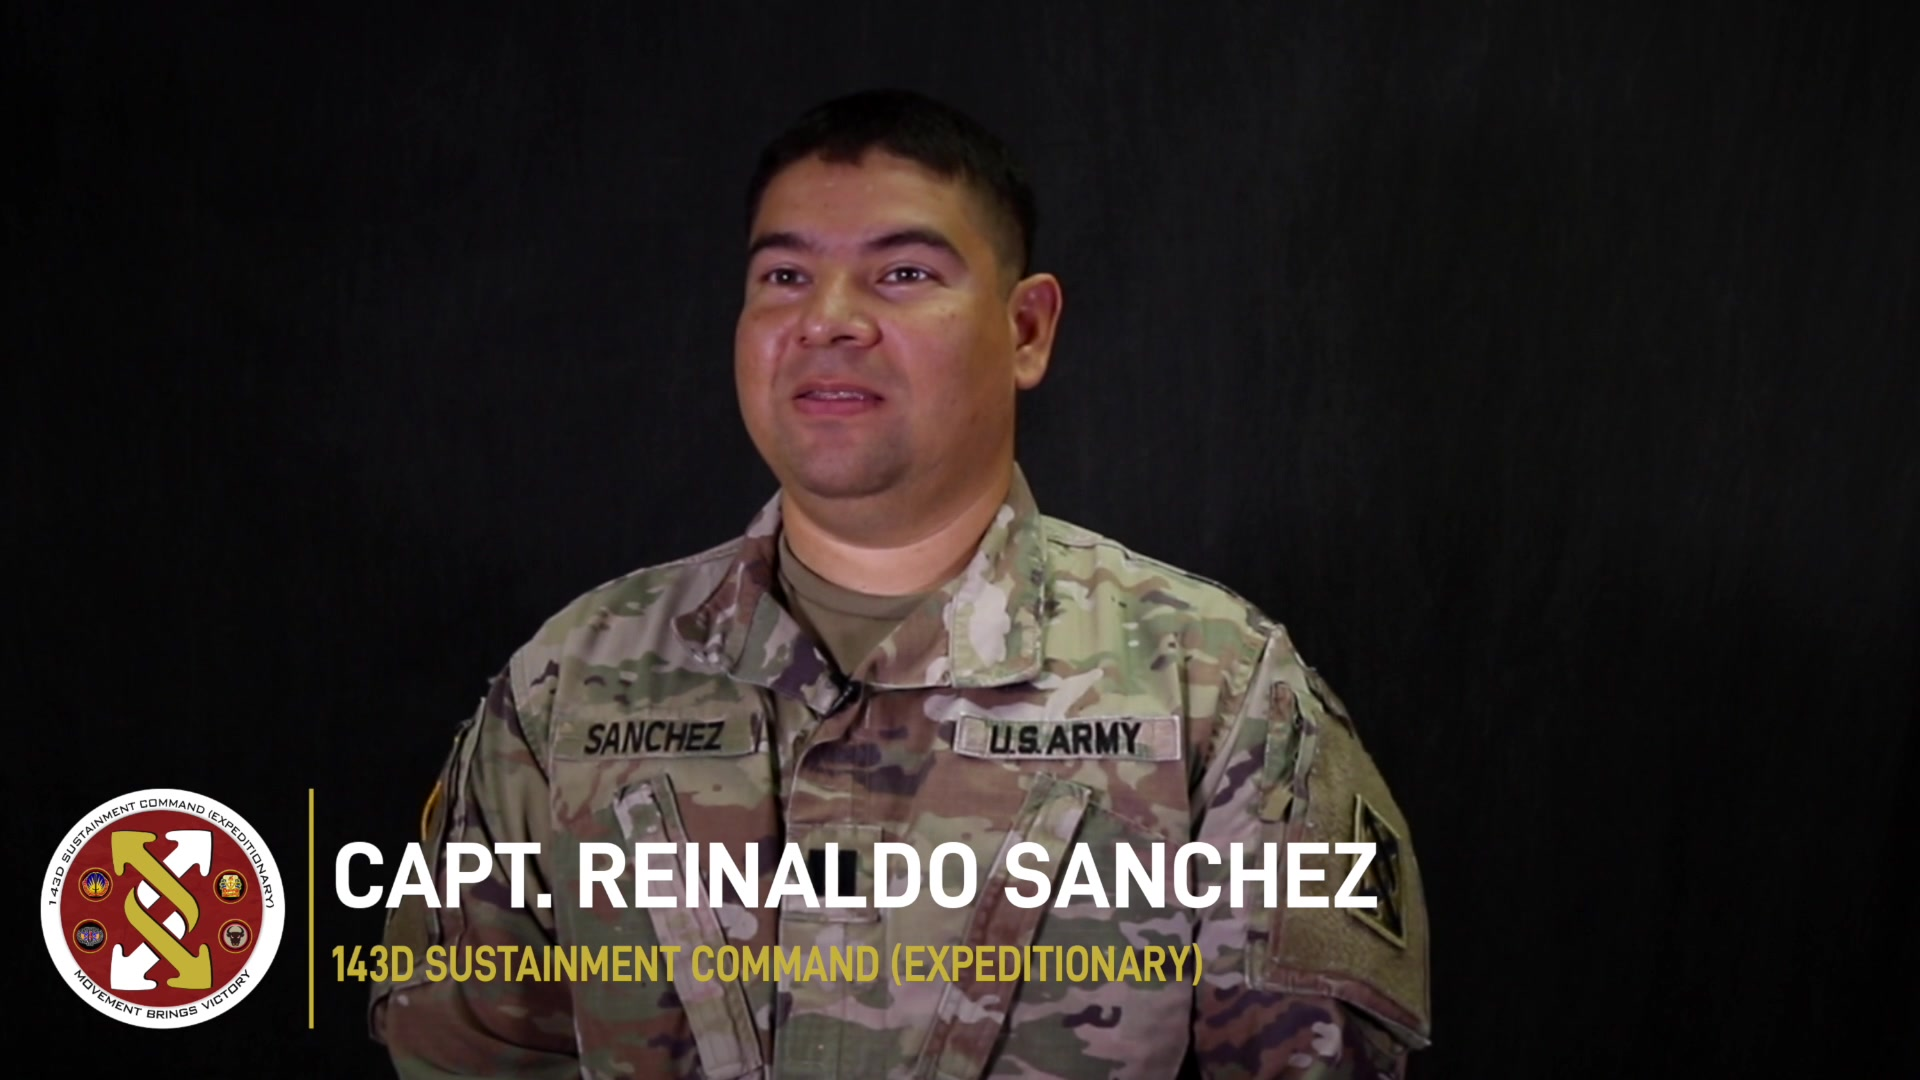 Capt. Reinaldo Sanchez serves as an information system officer at the 143d Sustainment Command (Expeditionary) in Orlando, Fla. Sanchez shared how his work environment changed during the COVID-19 pandemic. (U.S. Army video by Spc. Leon Orange)